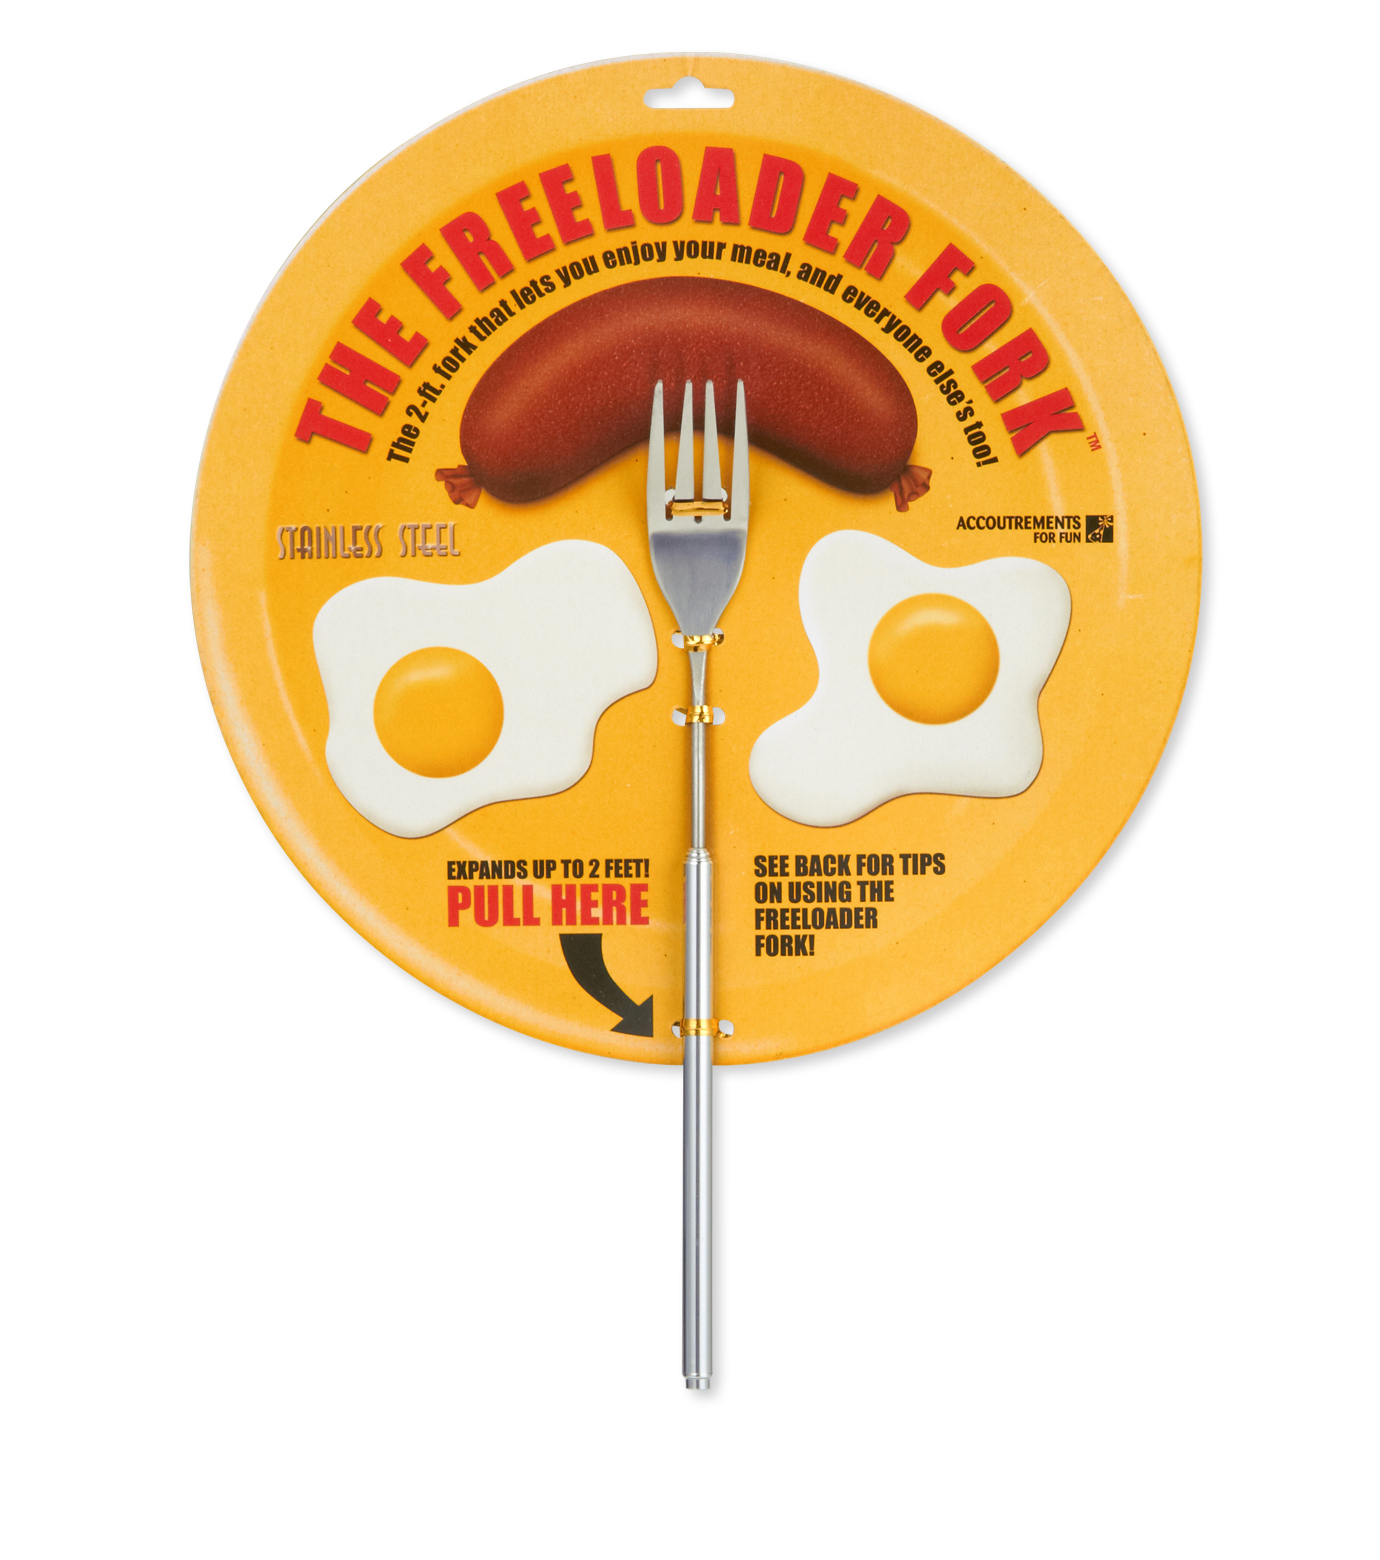 Accoutrements(アクータメンツ)のThe Freeloader Fork-SILVER(OTHER-GOODS/OTHER-GOODS)-10571 拡大詳細画像1